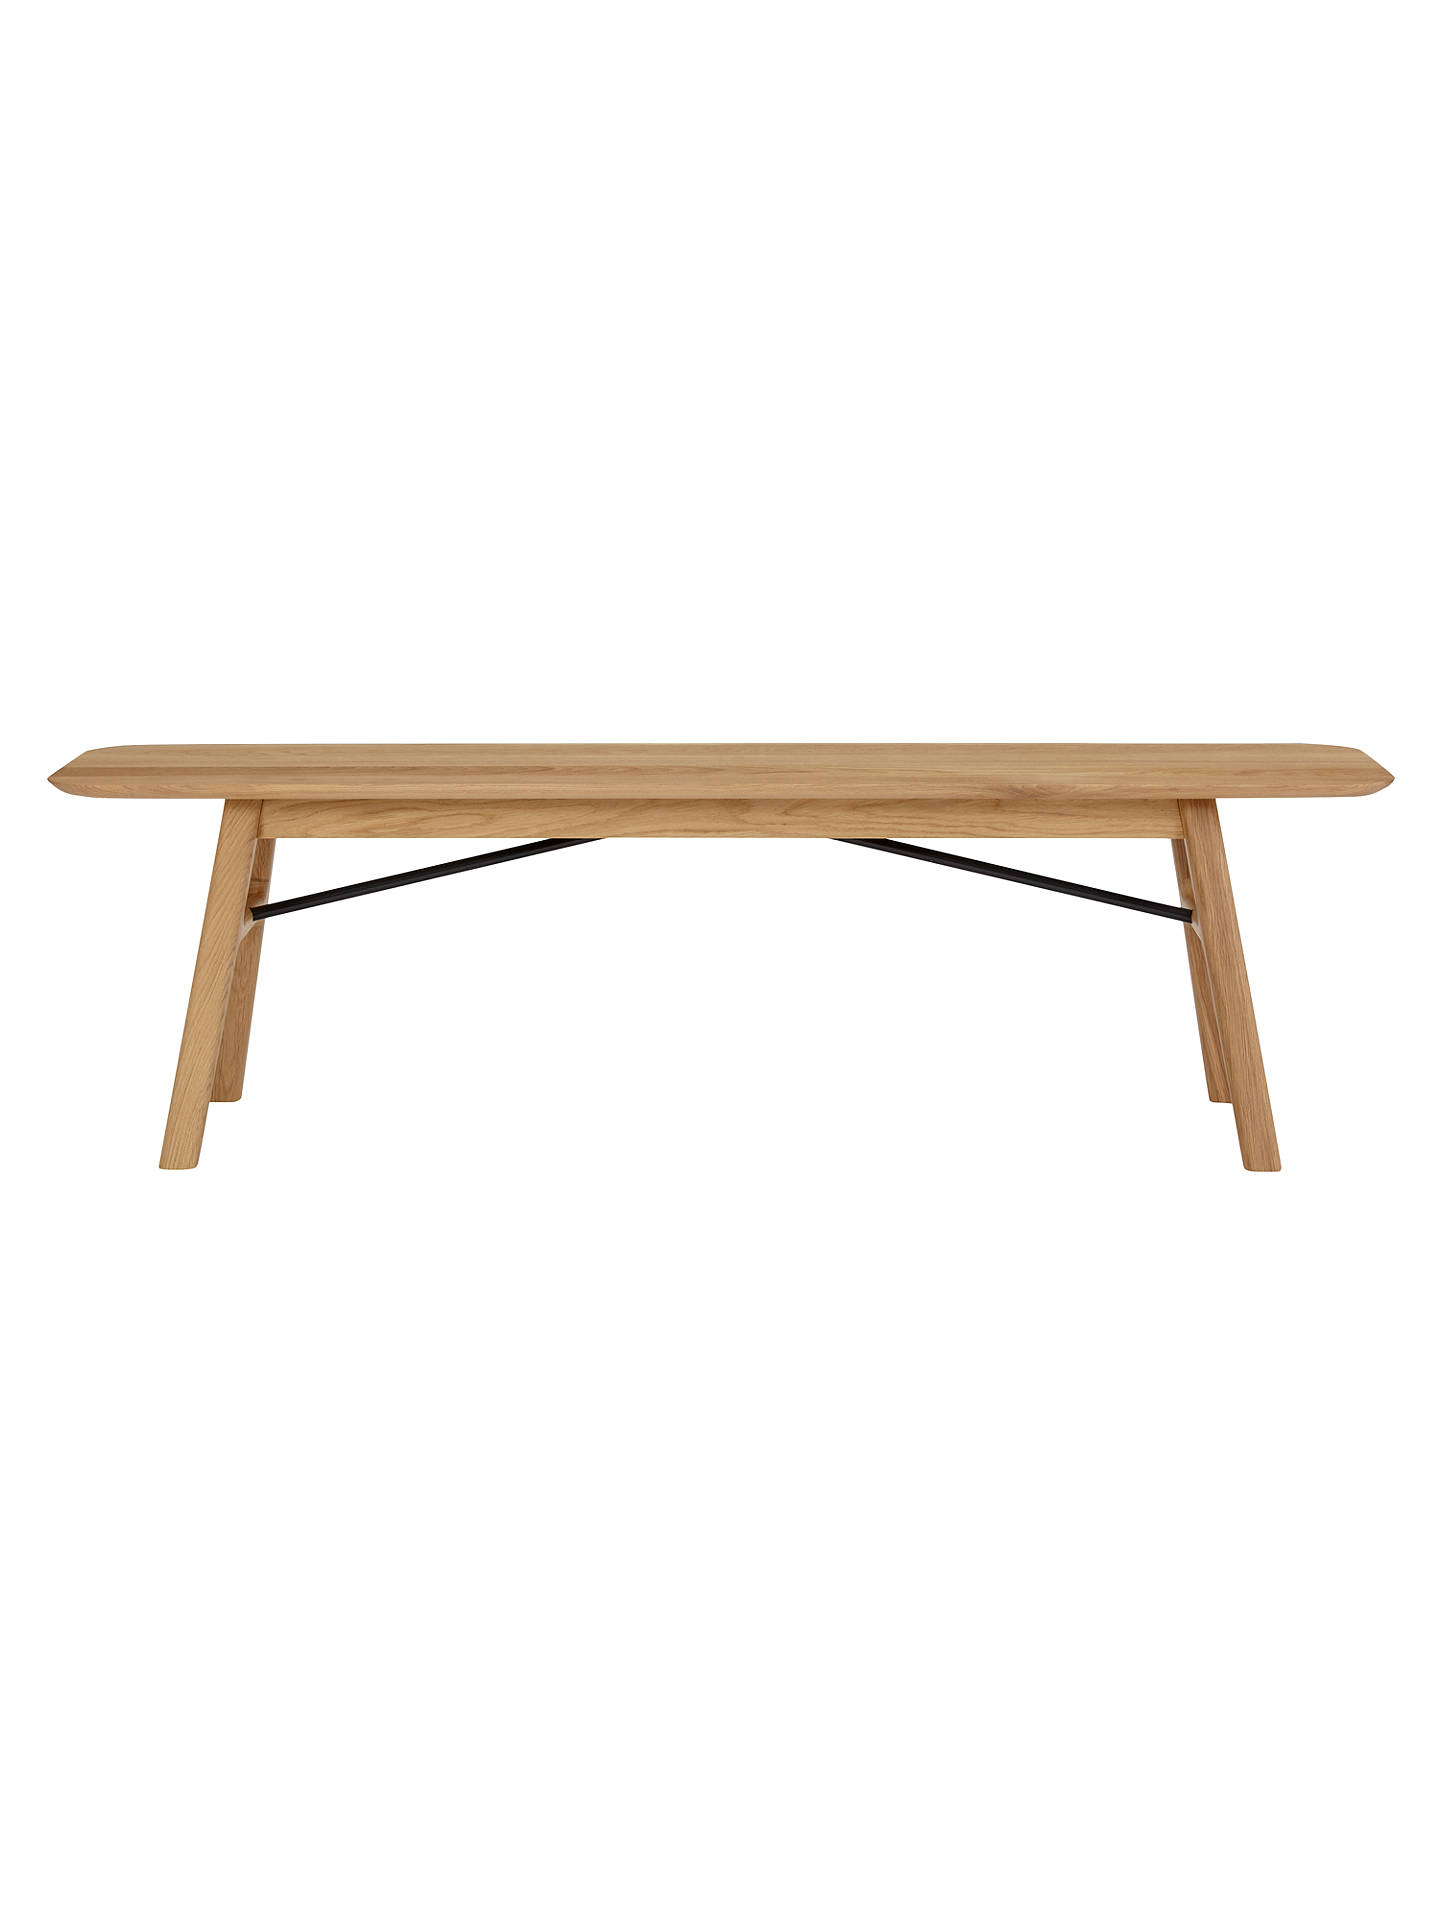 Design Project By John Lewis No 036 Dining Bench At John Lewis Amp Partners